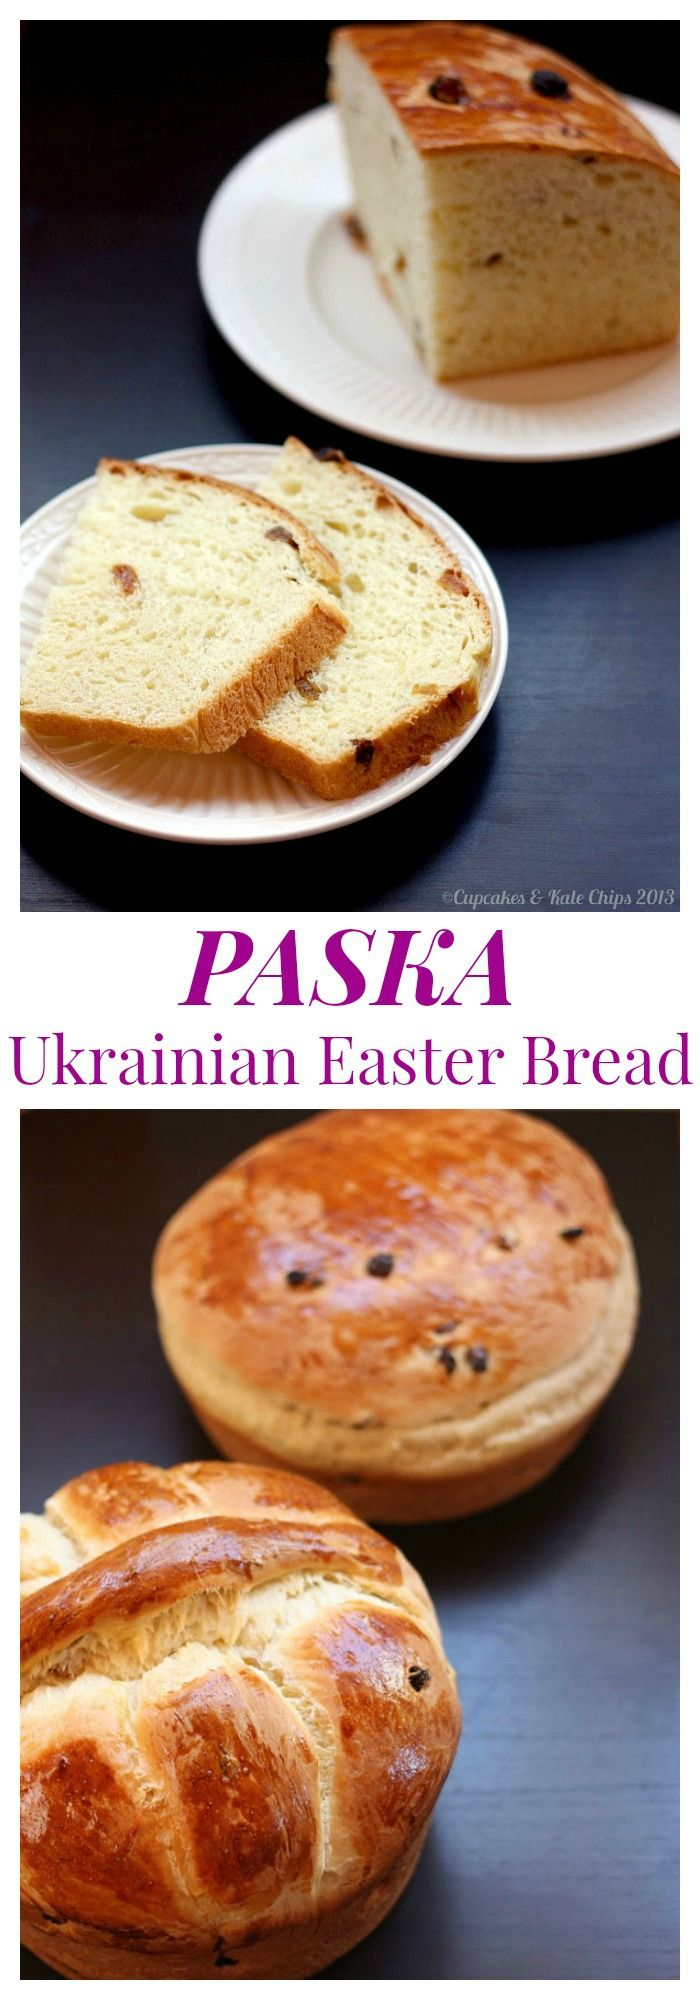 Paska - traditional Ukrainian Easter Bread. This recipes has been in my family for generations! | cupcakesandkalechips.com